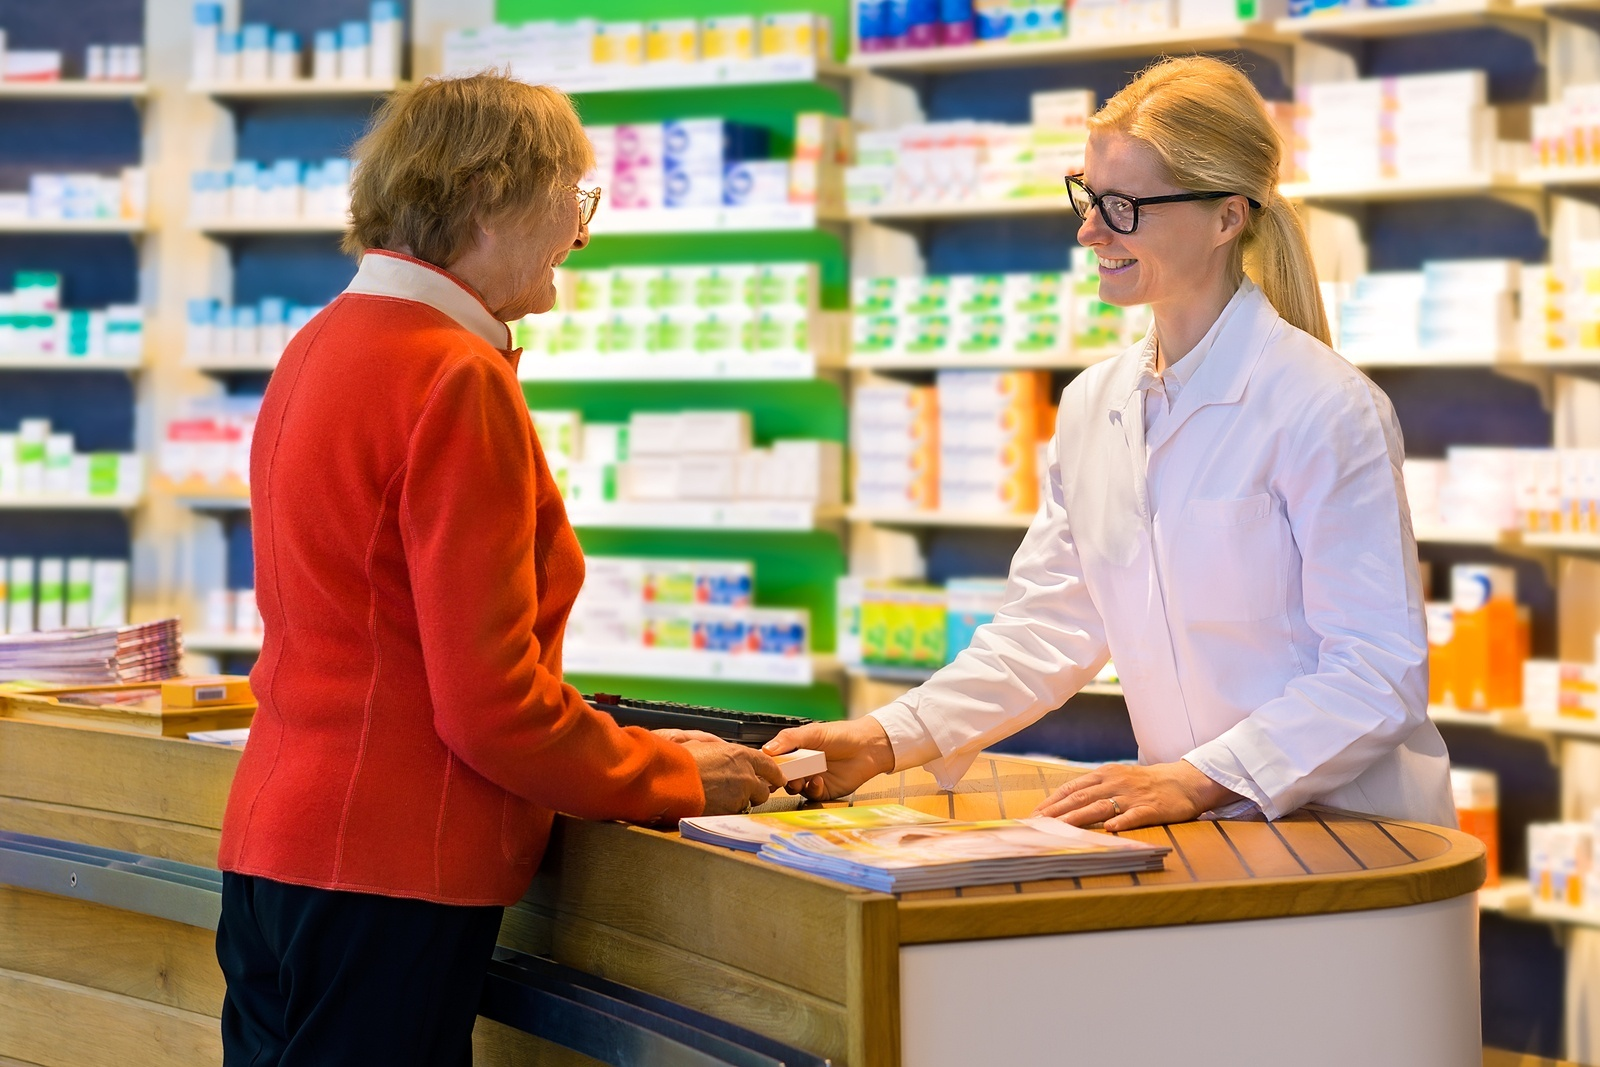 Dispensing Errors in Community Pharmacy